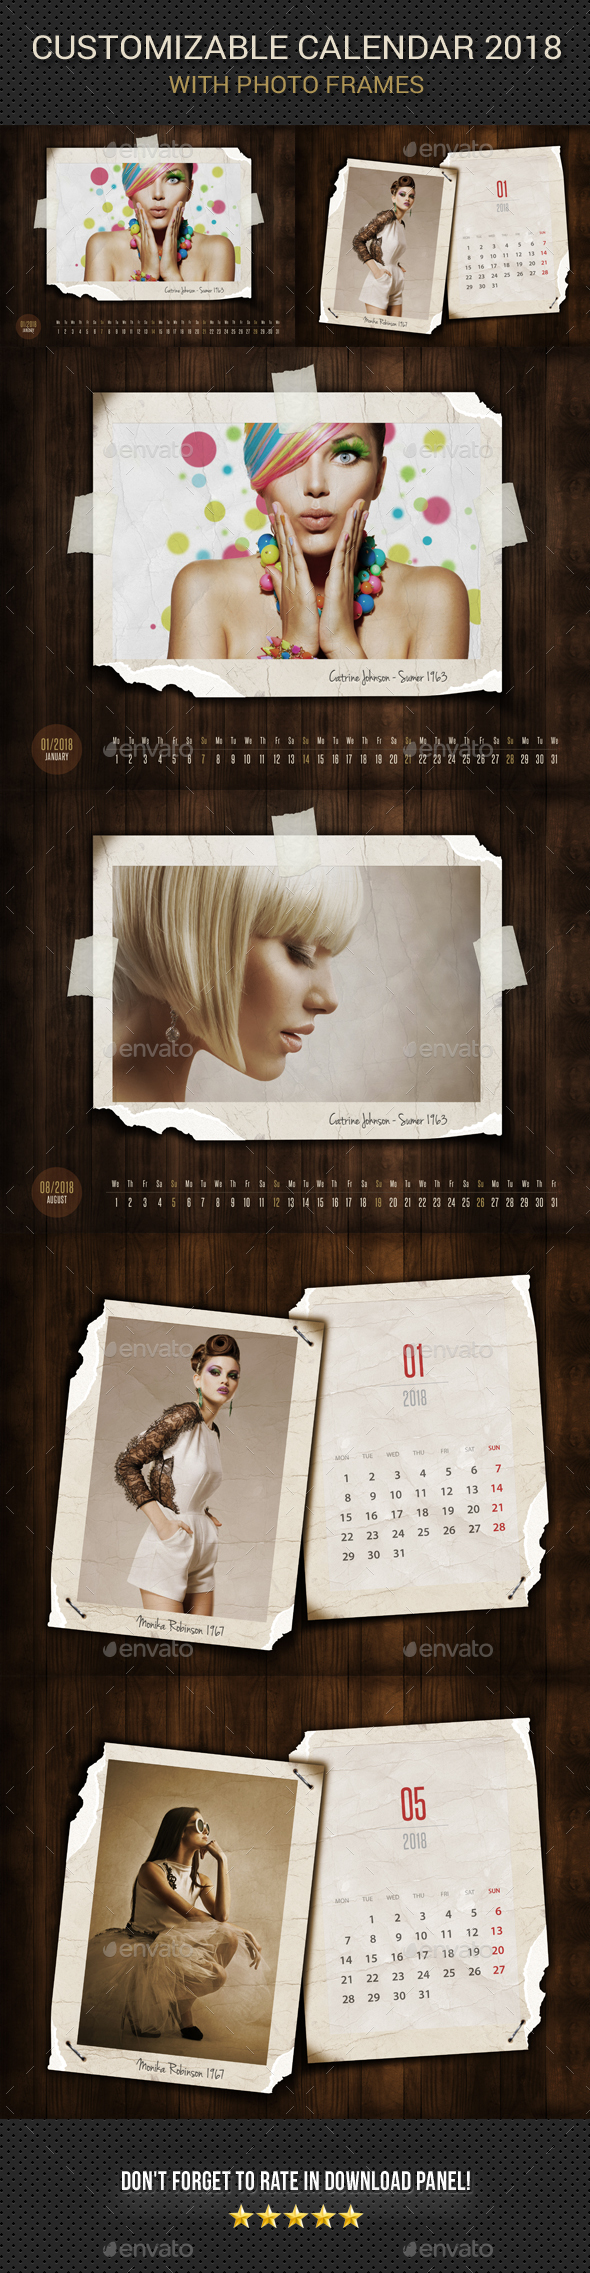 Customizable Vintage Calendar 2018 Photo Frame V08 - Photo Templates Graphics